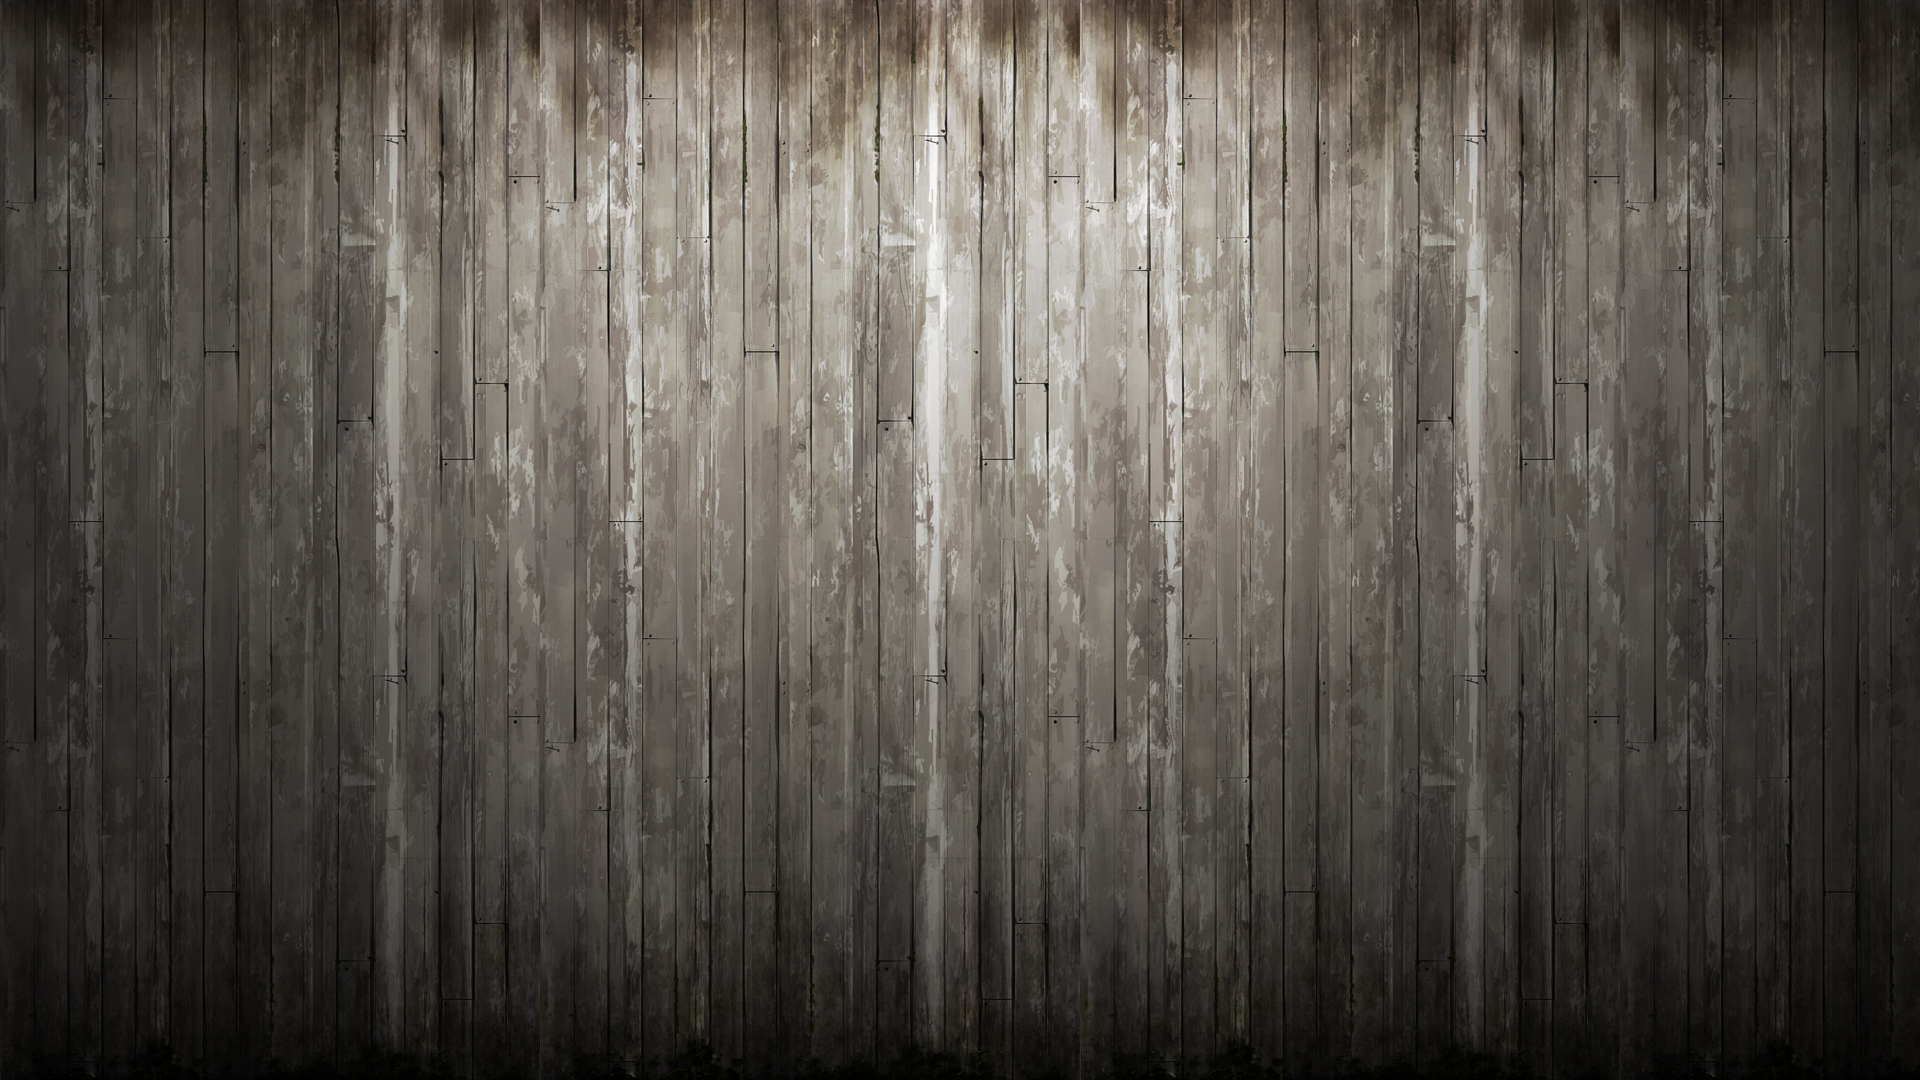 35 hd wood wallpapers backgrounds for free download for Sfondo legno hd